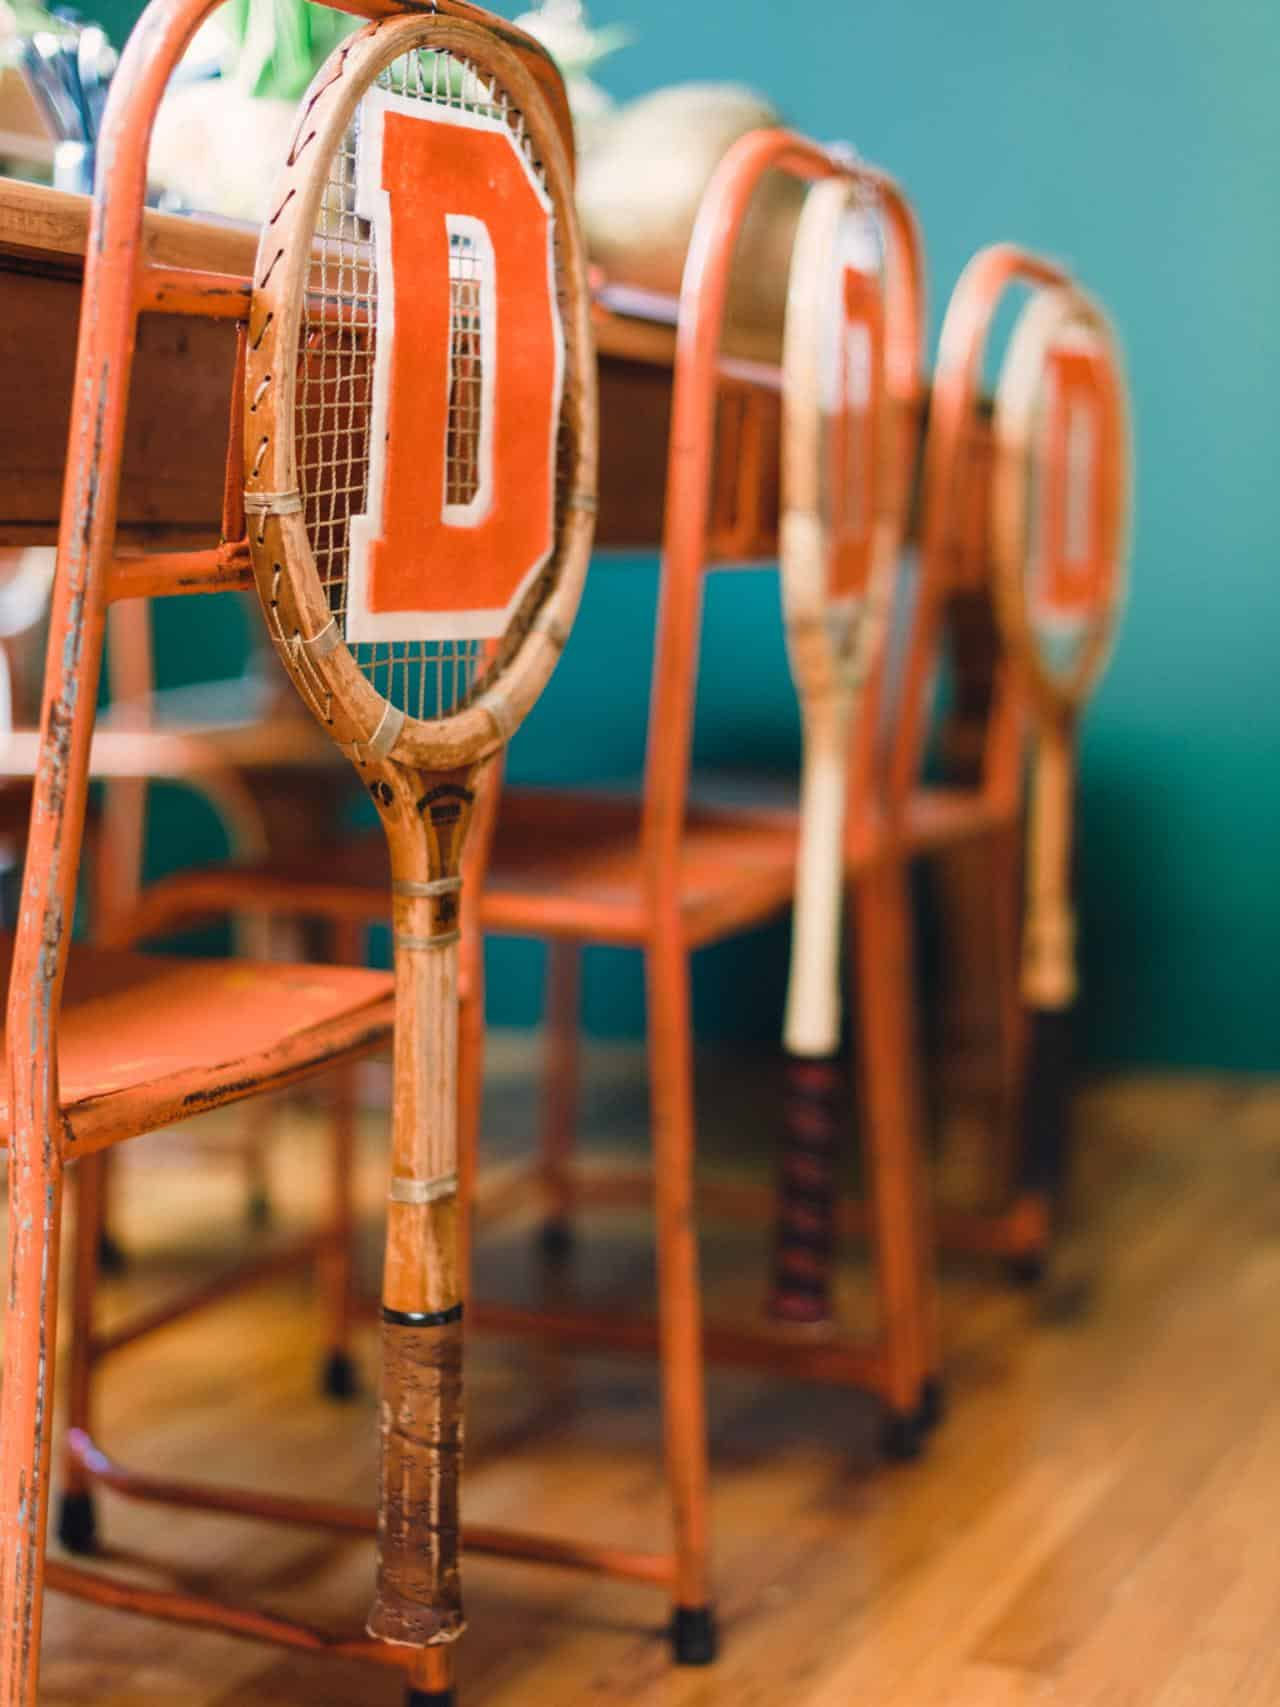 Tennis racket chairs